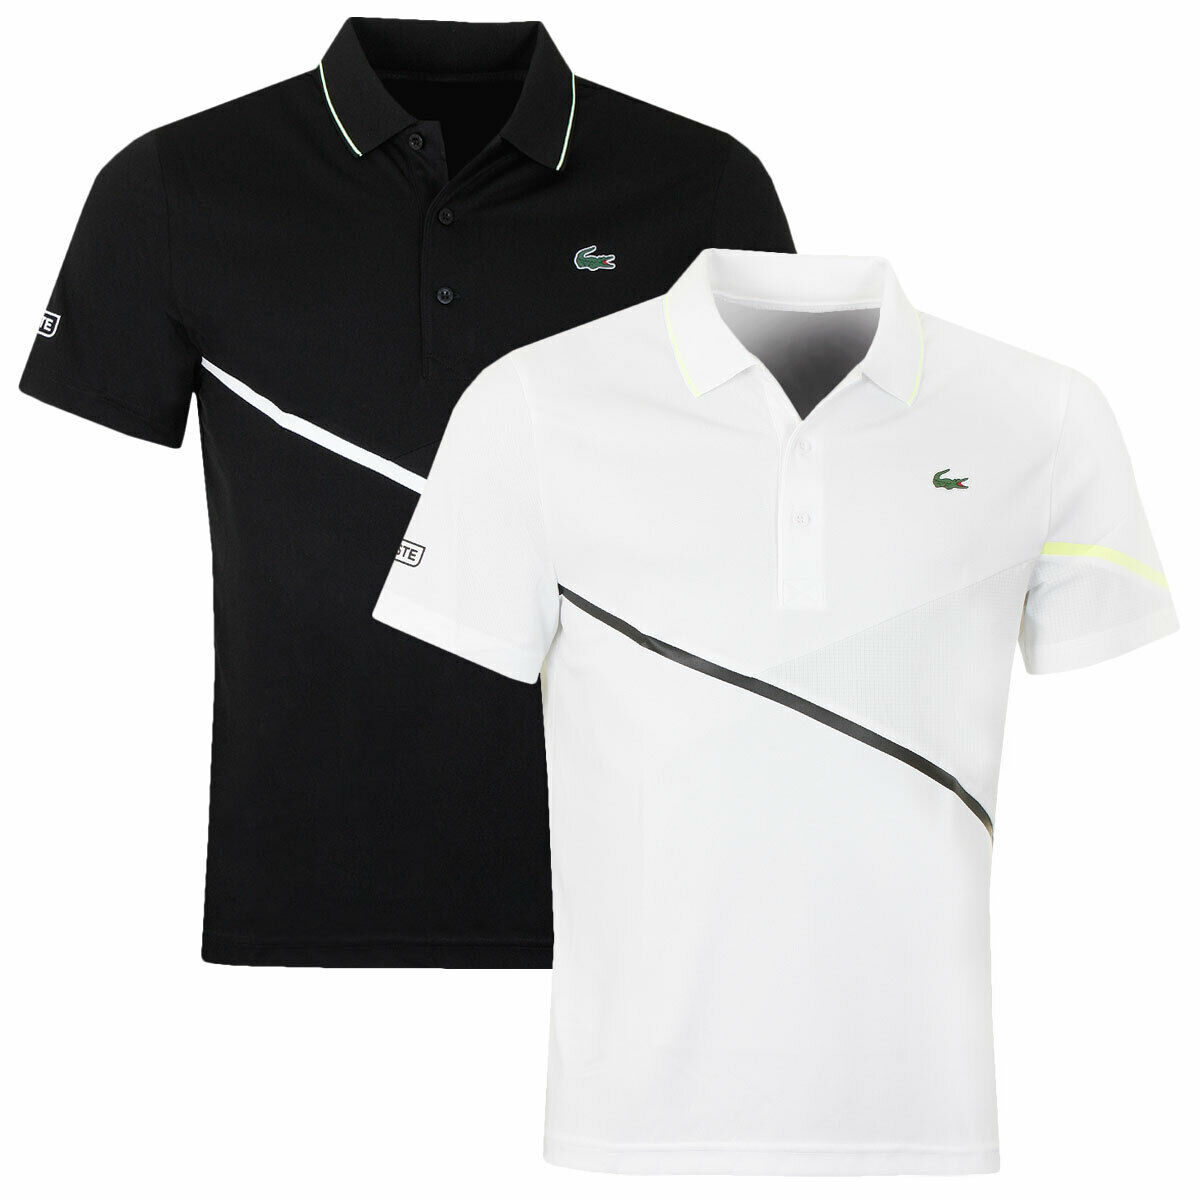 Lacoste Mens 2019 Short Sleeve Ribbed Collar 3 Button Polo Shirt 26% OFF RRP